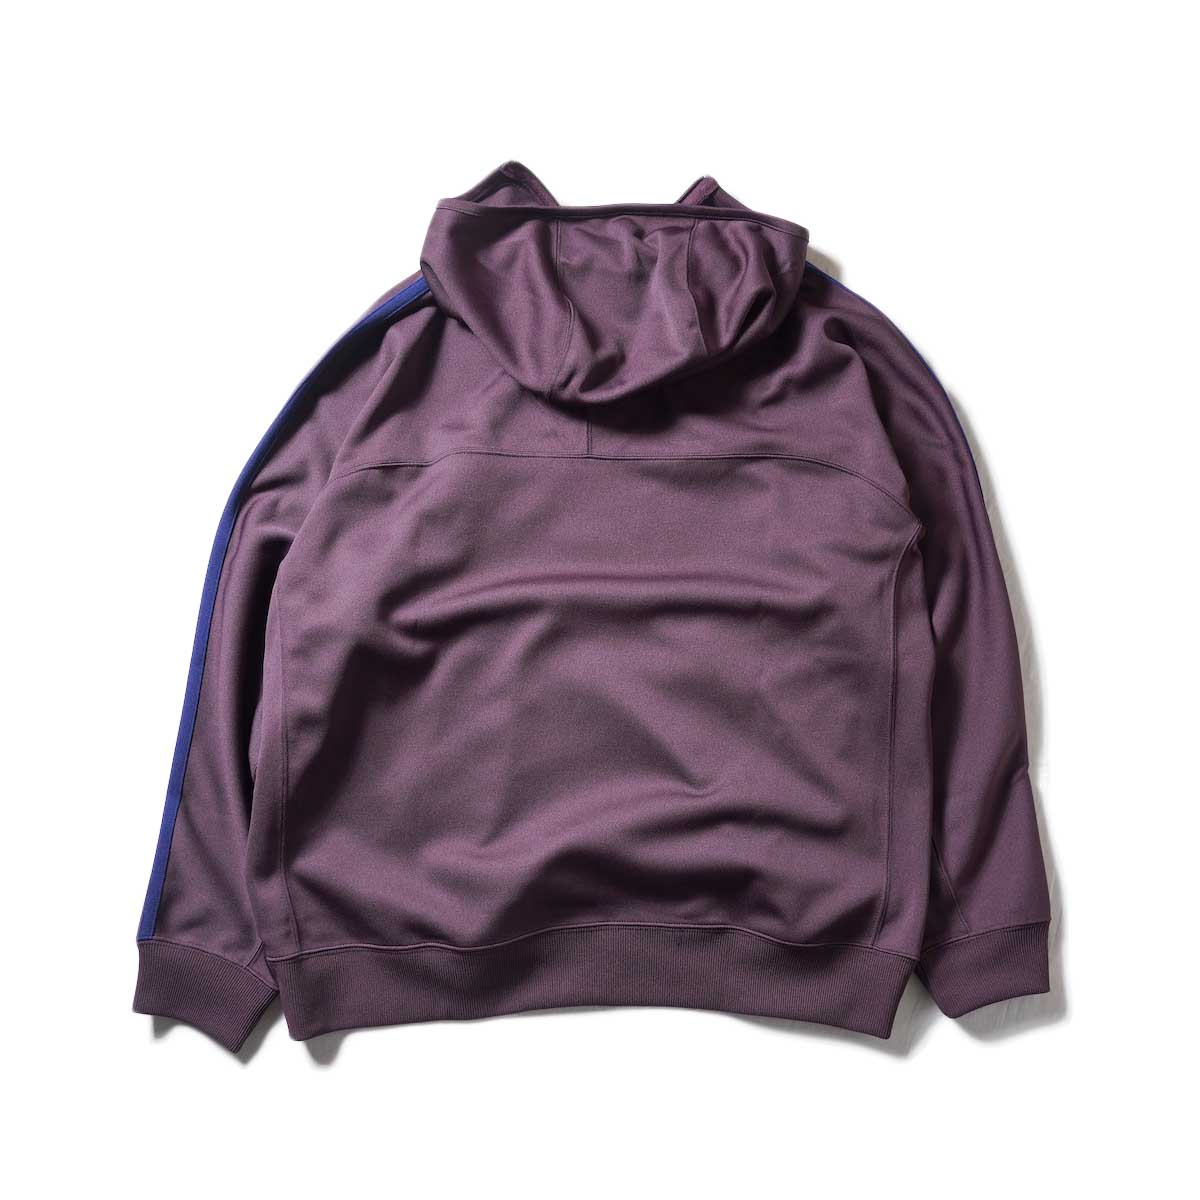 South2 West8 / Trainer Hoody - Poly Smooth (Burgundy)背面